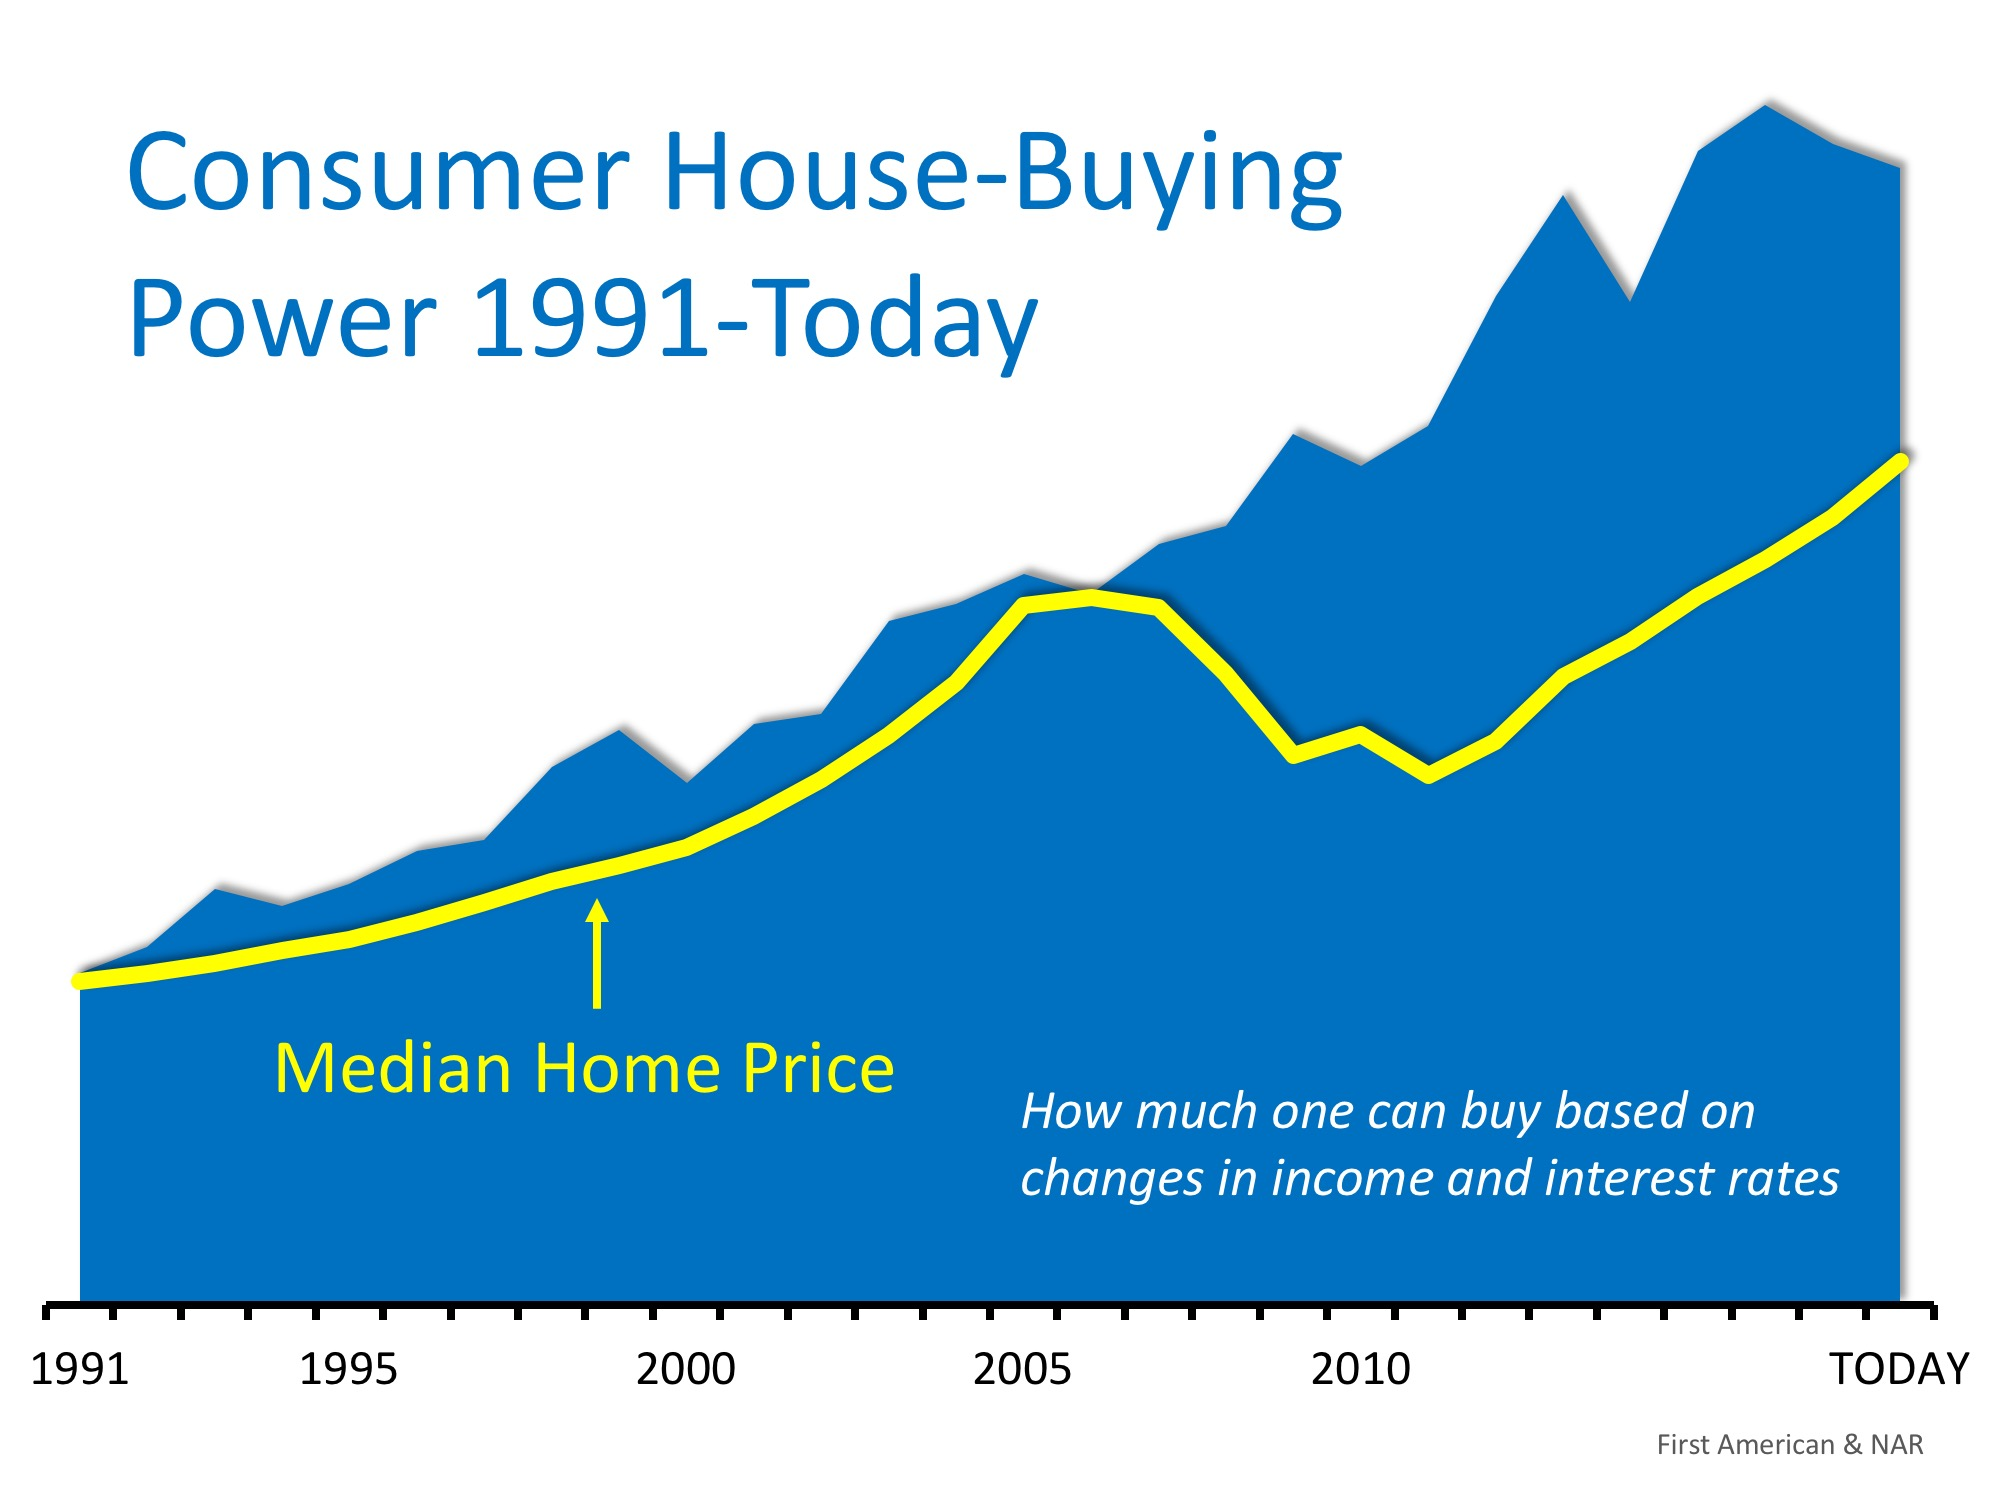 House-Buying Power at Near-Historic Levels